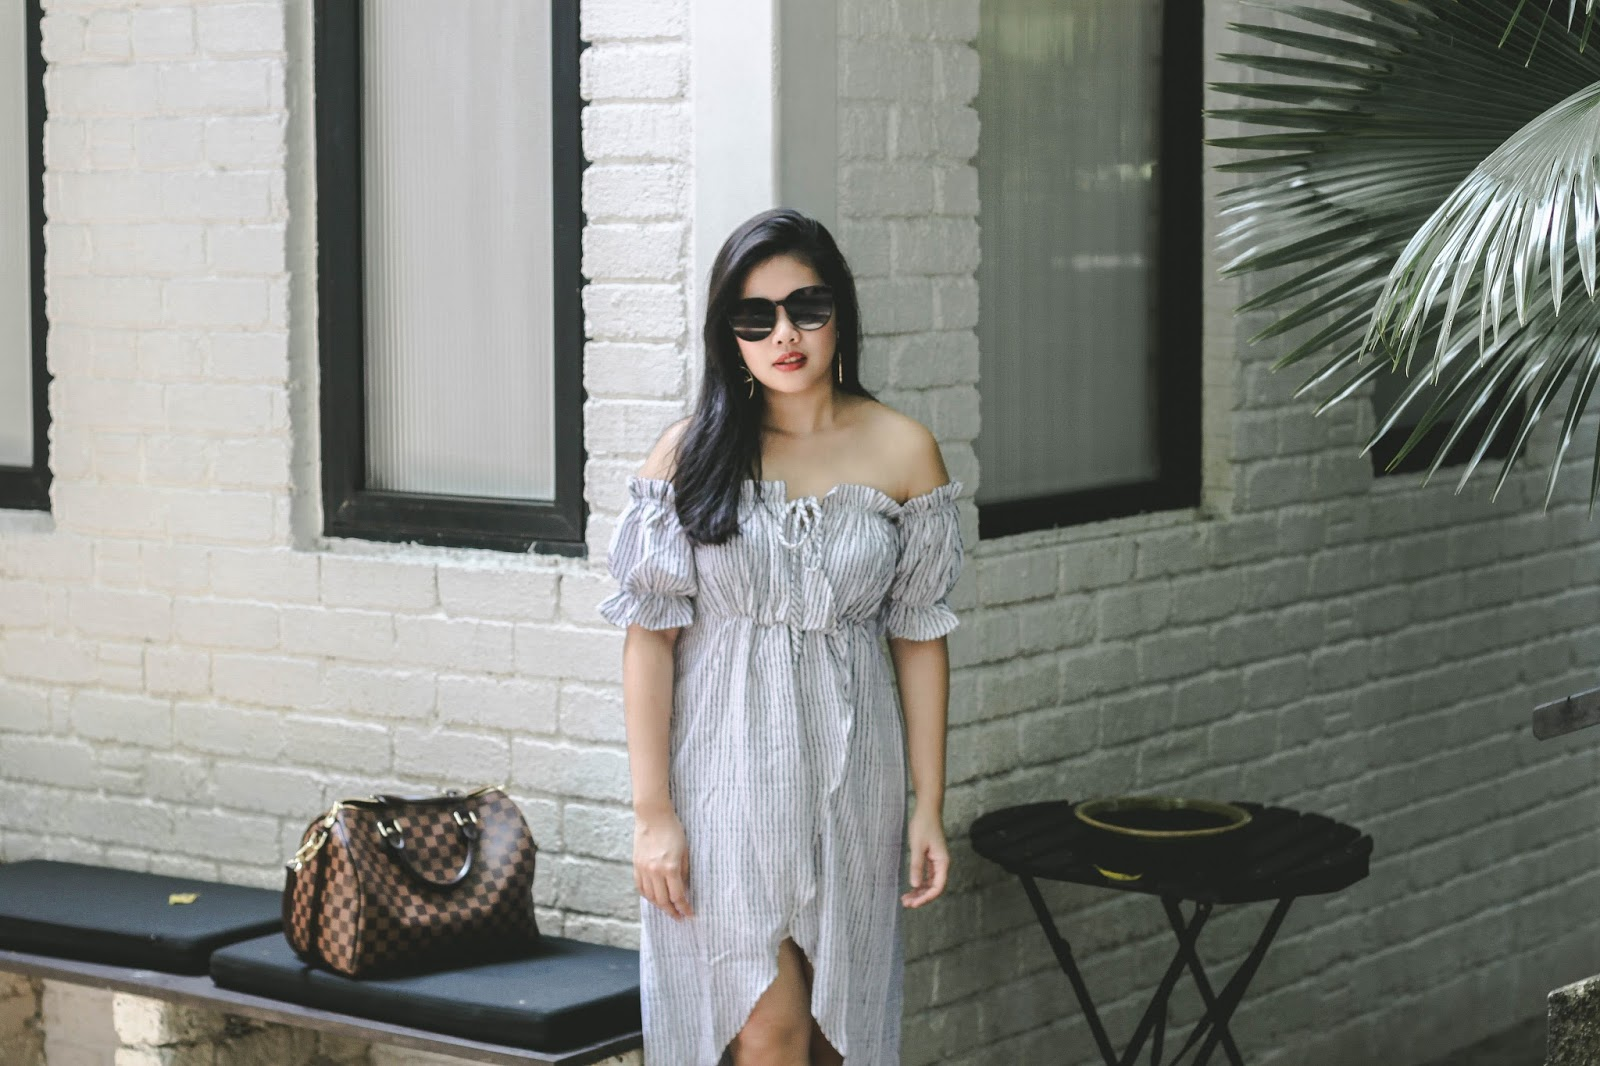 singapore blogger style influencer look book street style photographer zaful the gentle monster outfit ootd